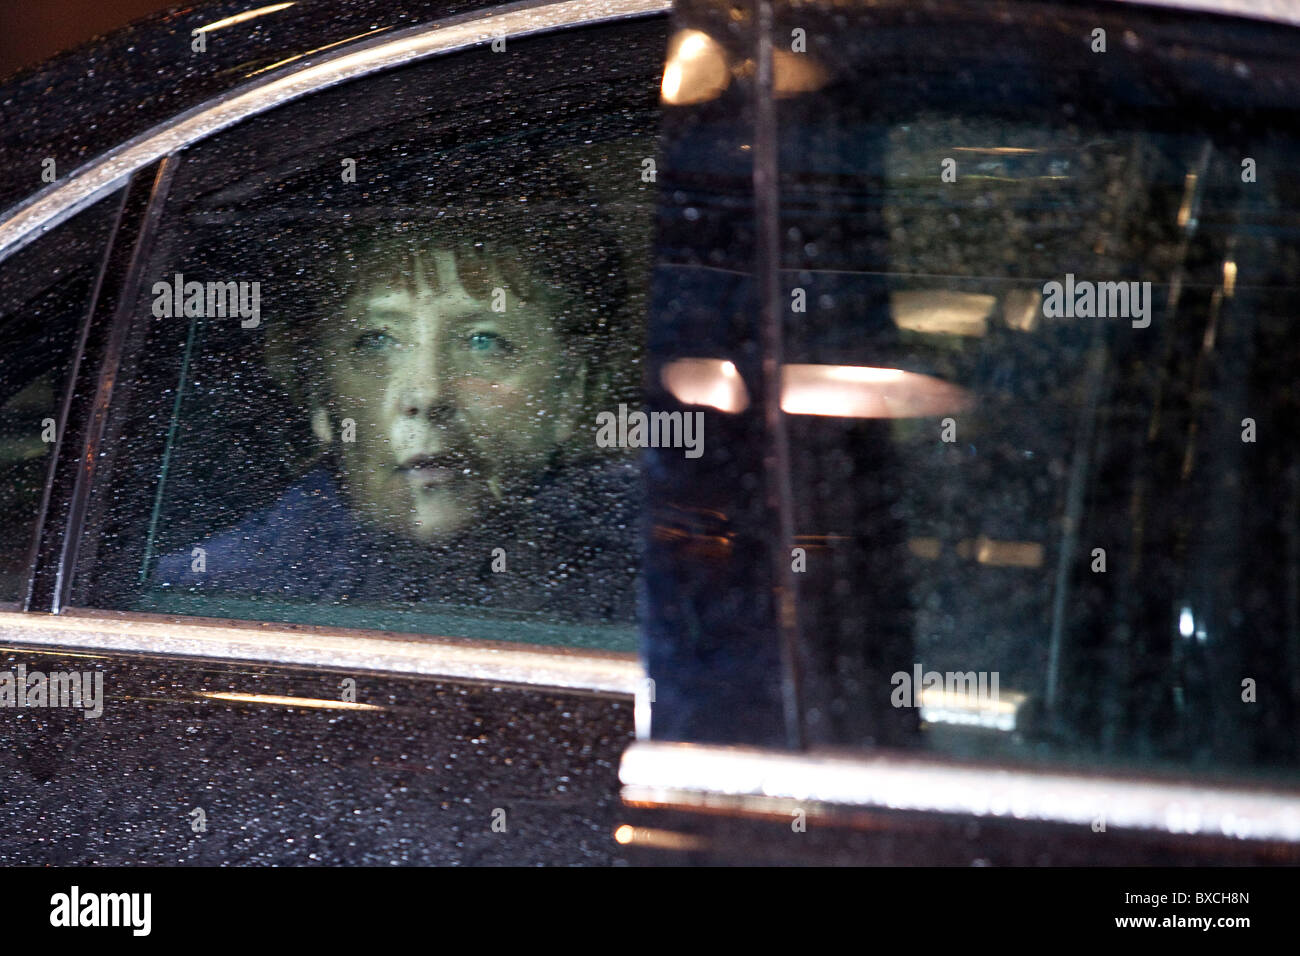 German Chancellor Angela Merkel arrives to the EU Summit on 16 december 2010 - Stock Image